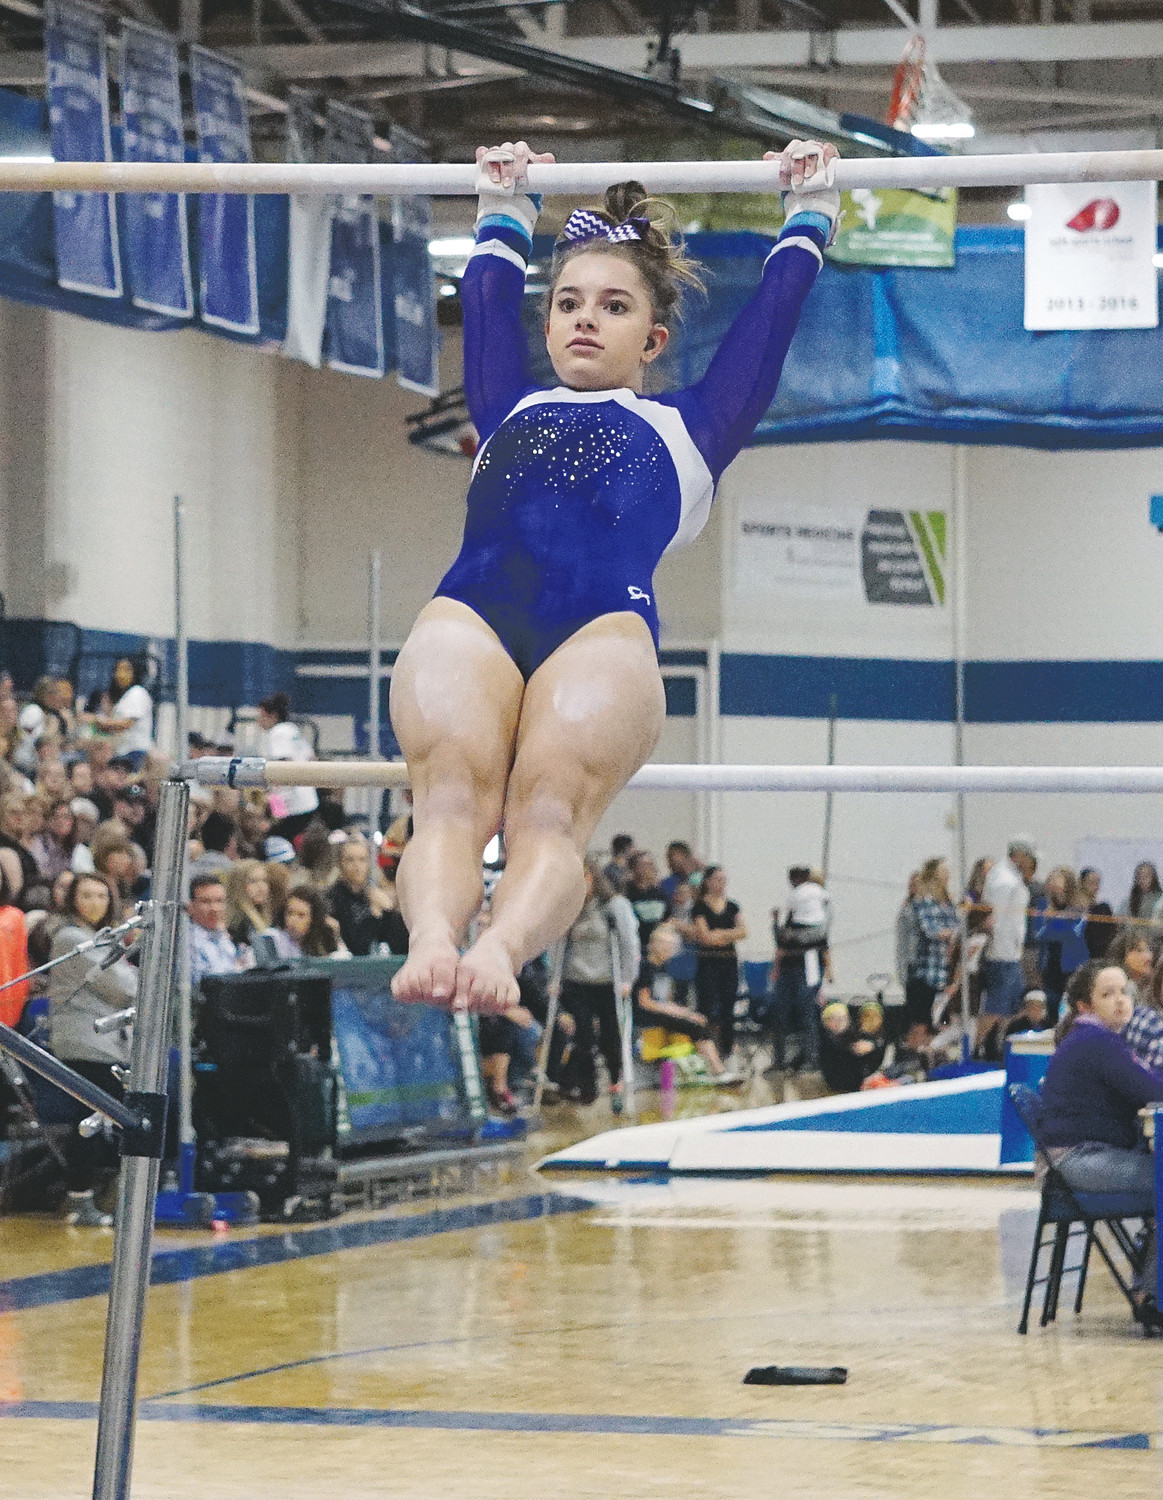 Arvada West senior Shaye Mathais competes on the uneven bars during the Class 5A state event finals Nov. 4 at Thornton High School. Mathais won the 5A beam event in her final routine of her prep gymnastics career.